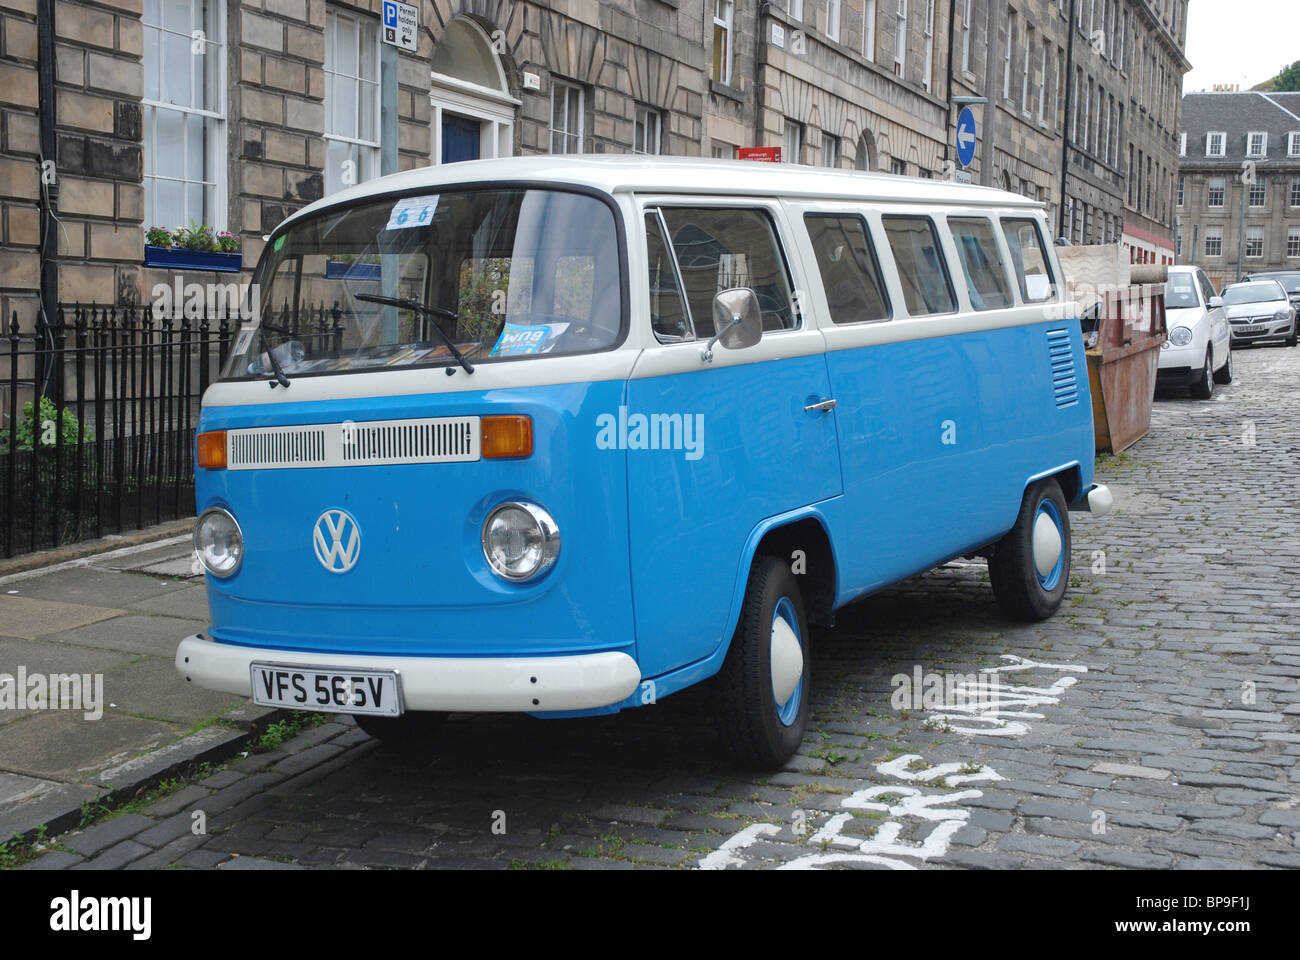 VW camper van parked on a cobbled street in the centre of Edinburgh. - Stock Image